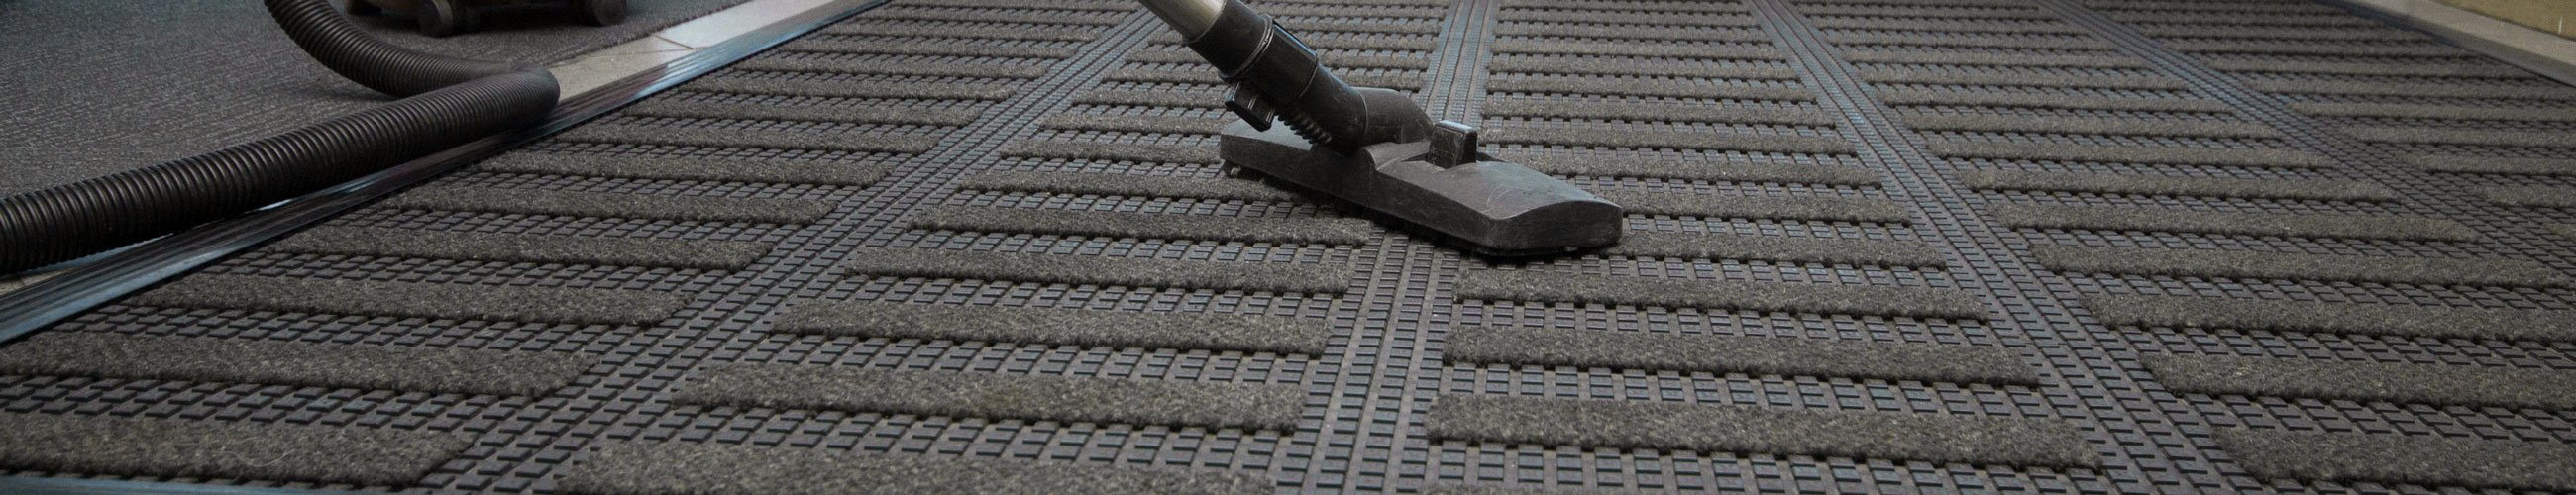 entrance matting cleaning guide